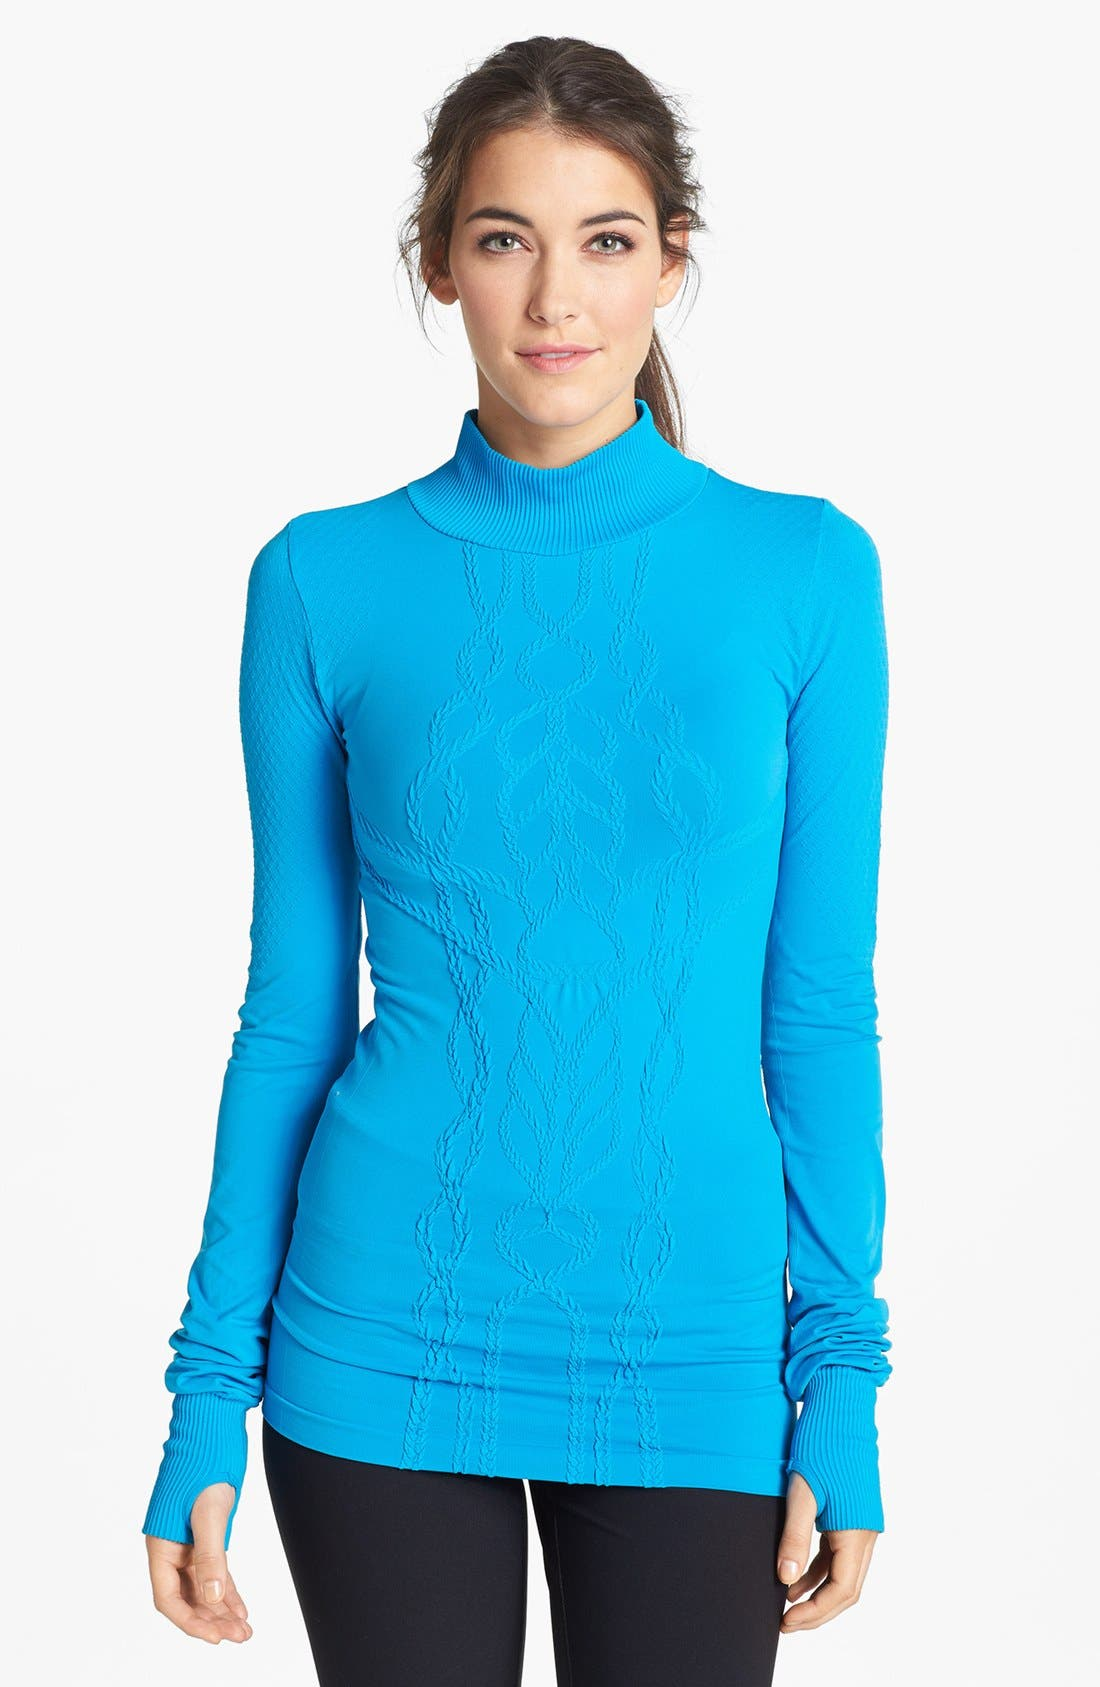 Alternate Image 1 Selected - Zella Seamless Cable Training Top